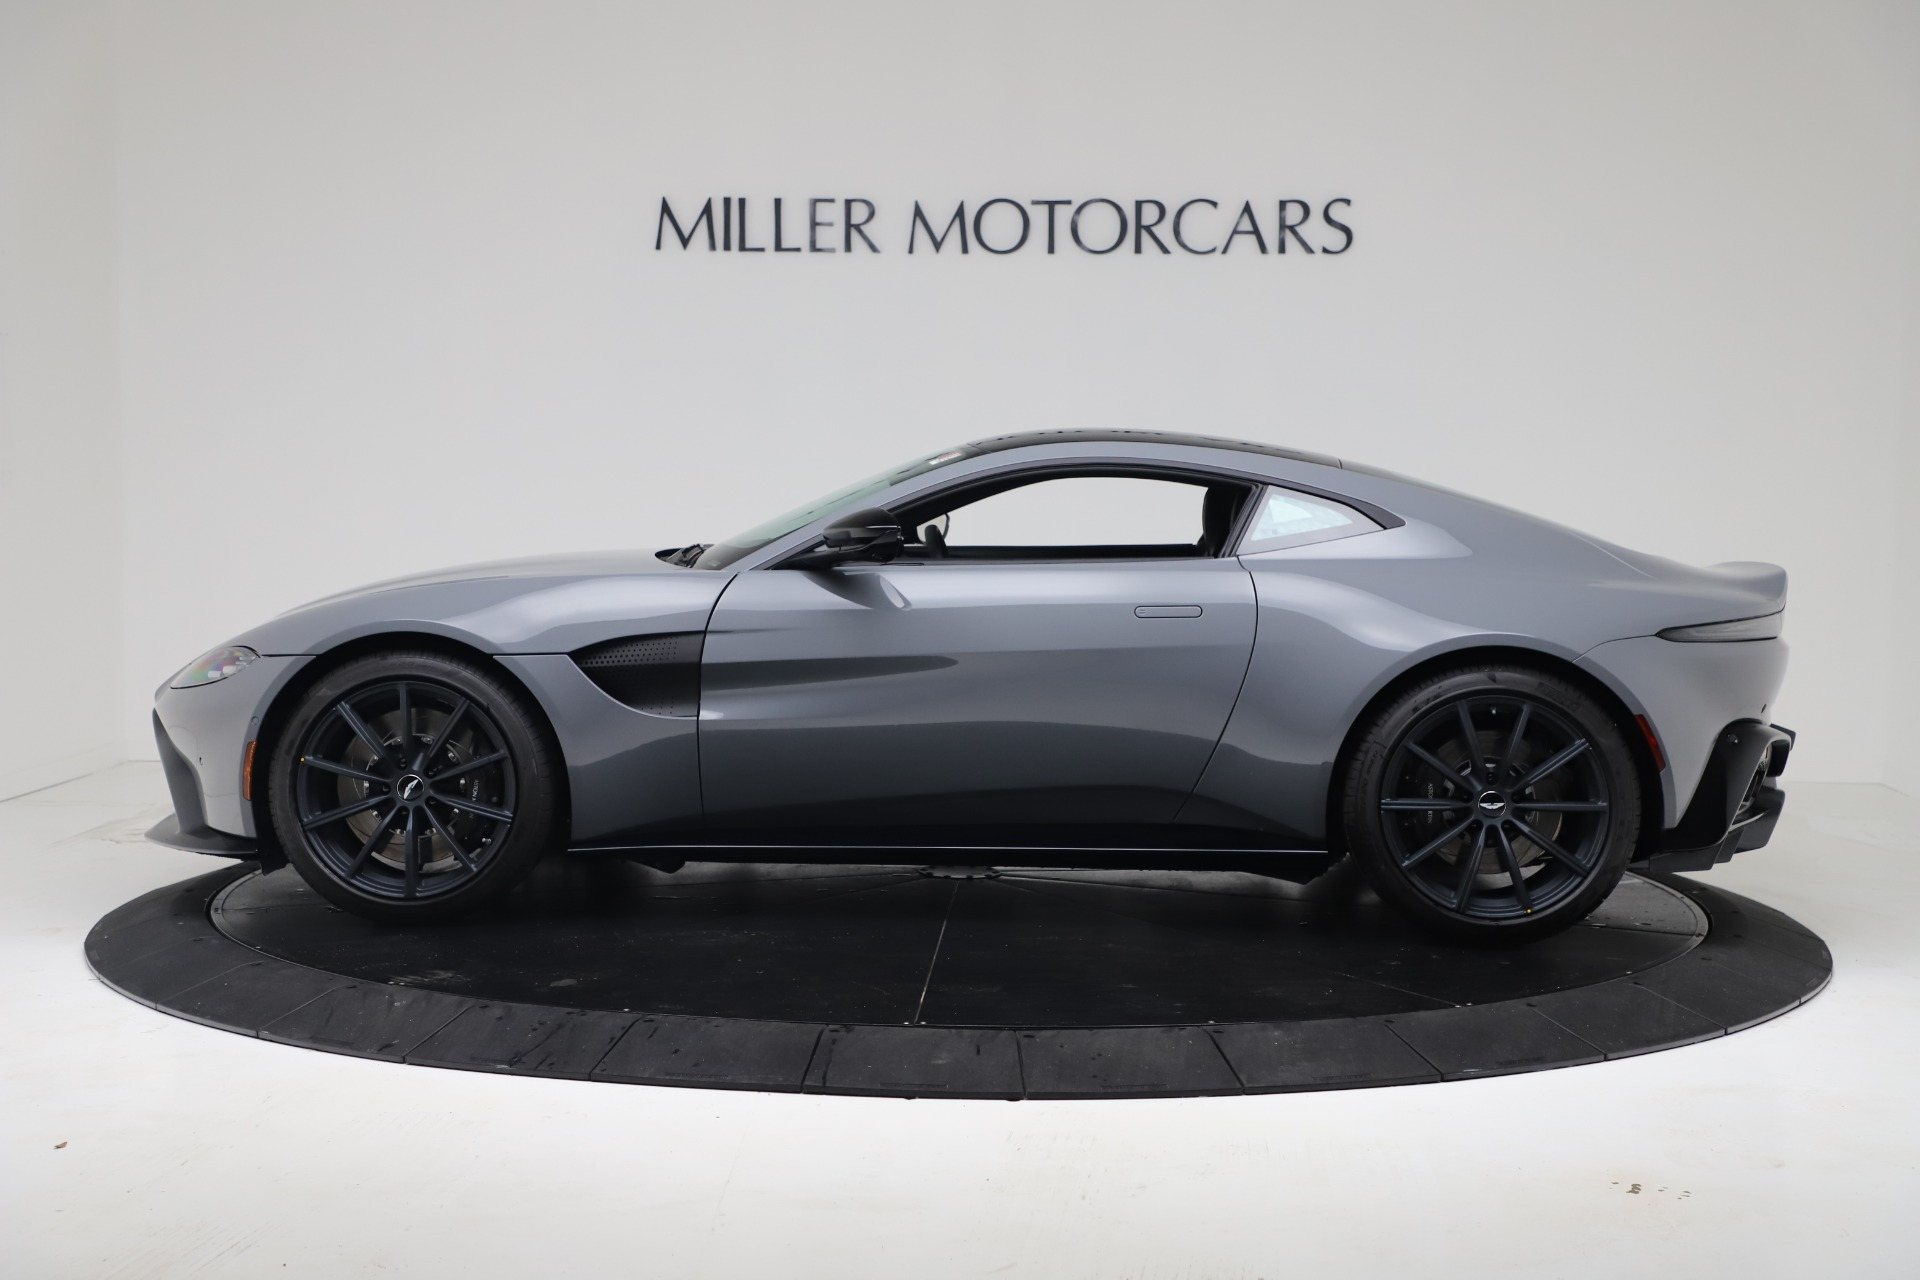 New 2020 Aston Martin Vantage V8 For Sale In Westport, CT 3482_p23